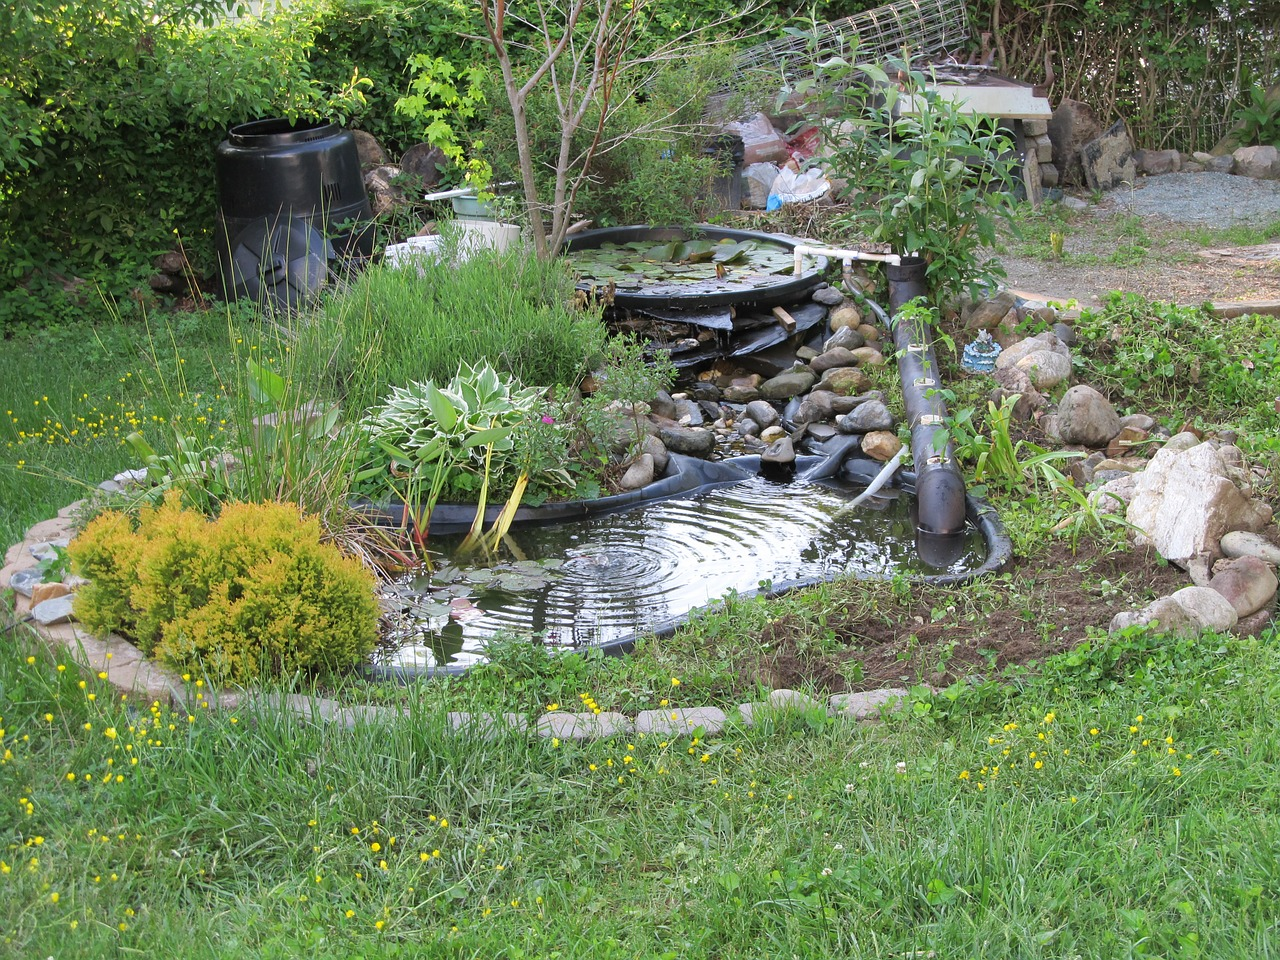 DIY - Build a Natural Fish Pond in Your